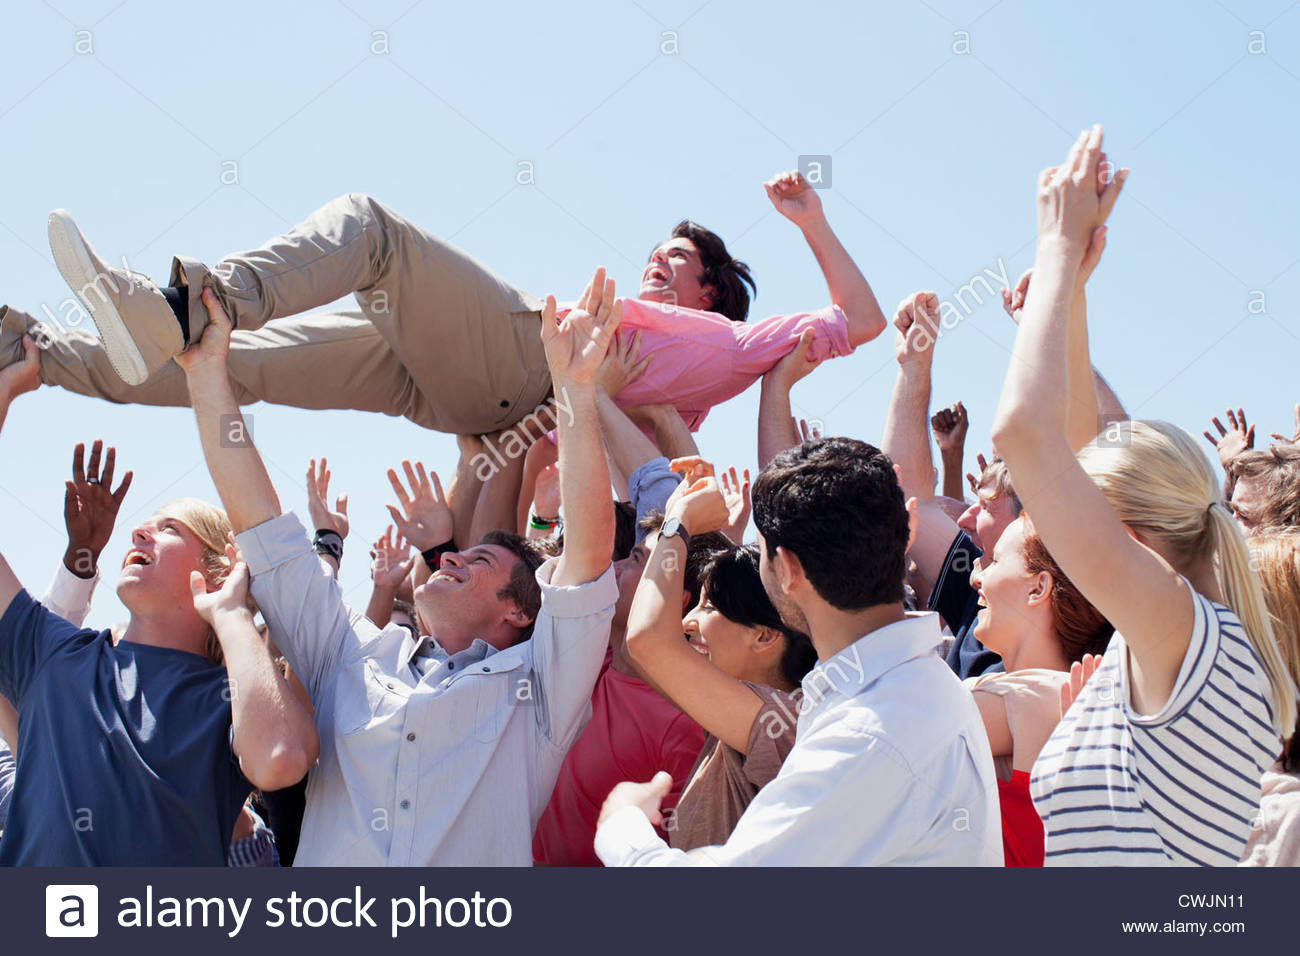 Man crowd surfing Photo Stock